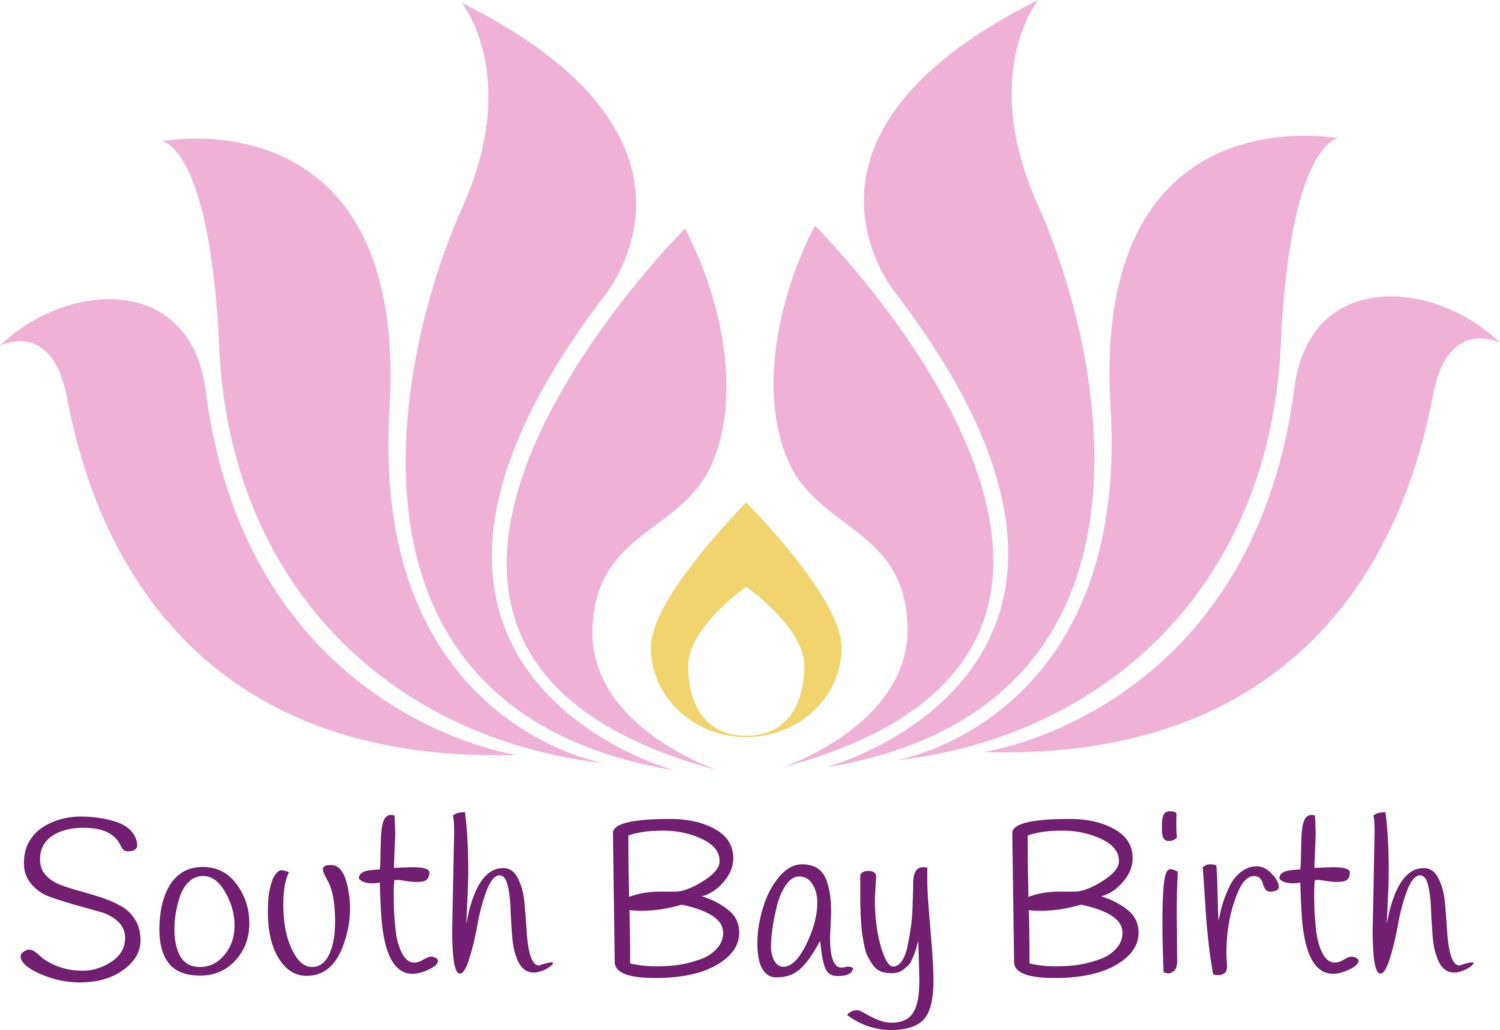 South Bay Birth